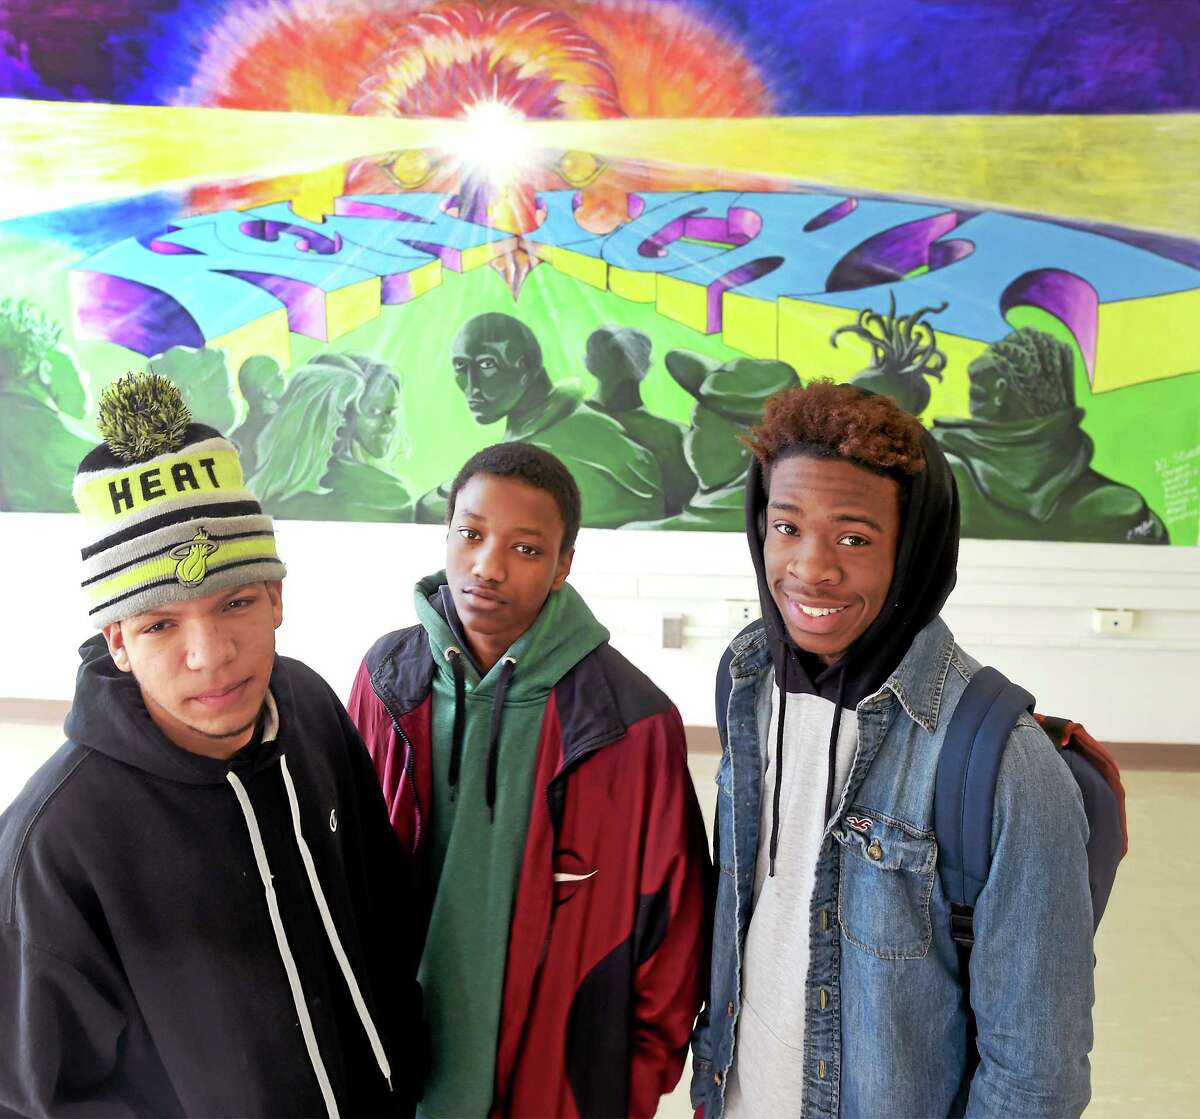 Angel Santana, 16, Shayquan Gray, 14, and Osheem McBride, 17, left to right, are three of the seven New Light School students who created a mural at the New Haven school. Tuesday, January 20, 2015.